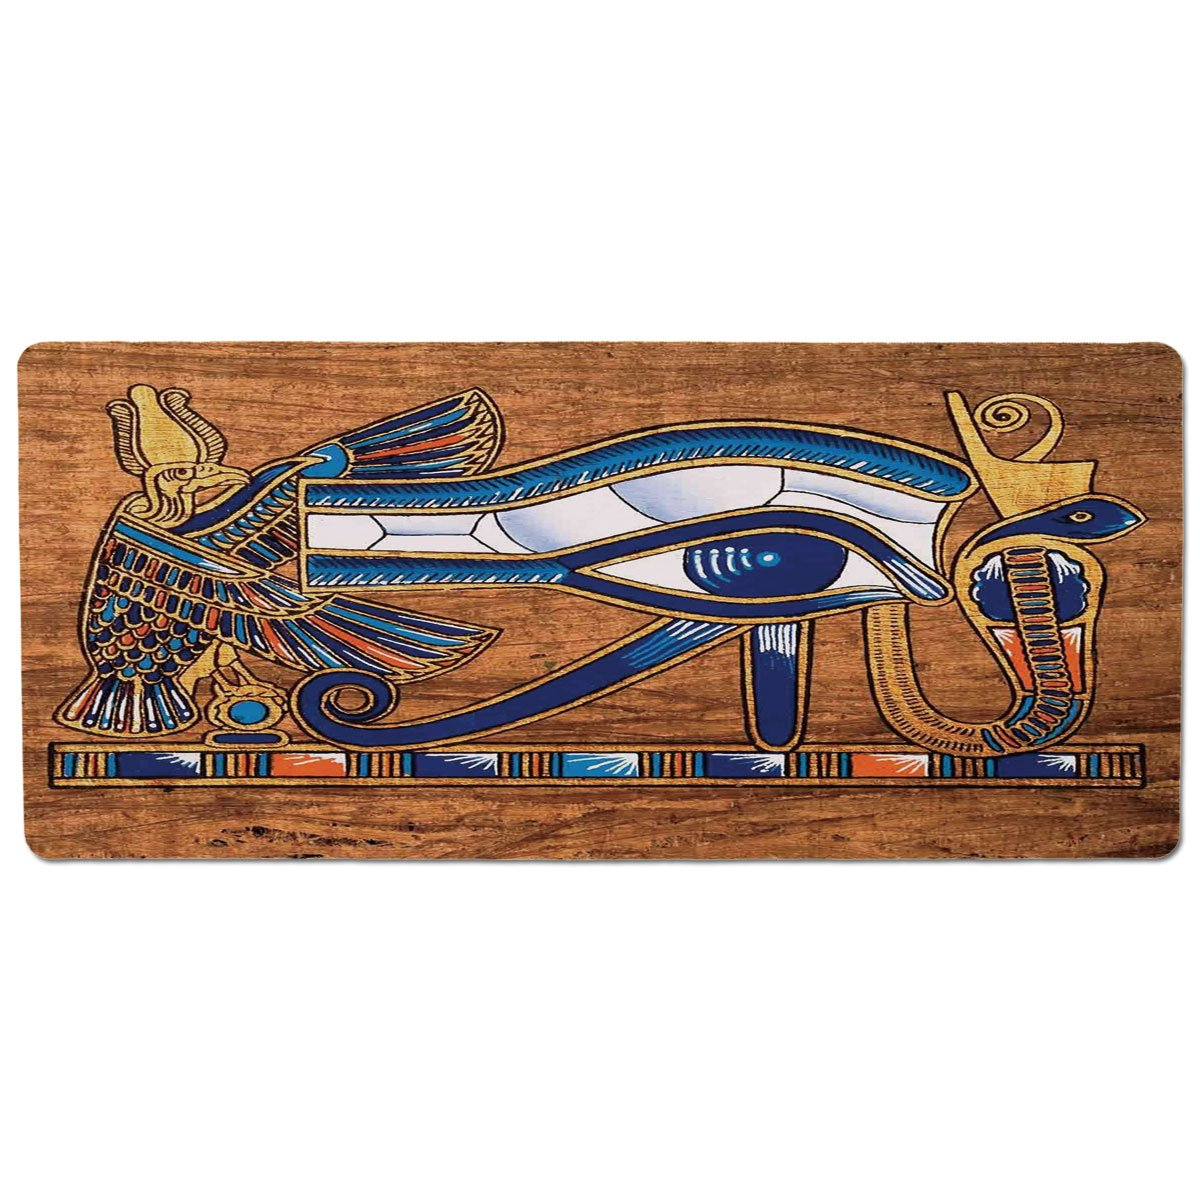 35.4\ iPrint Pet Mat for Food and Water,Egyptian,Egyptian Ancient Art Papyrus Depicting Horus Eye Mosaic Design,Navy bluee orange and Brown,Rectangle Non-Slip Rubber Mat for Dogs and Cats